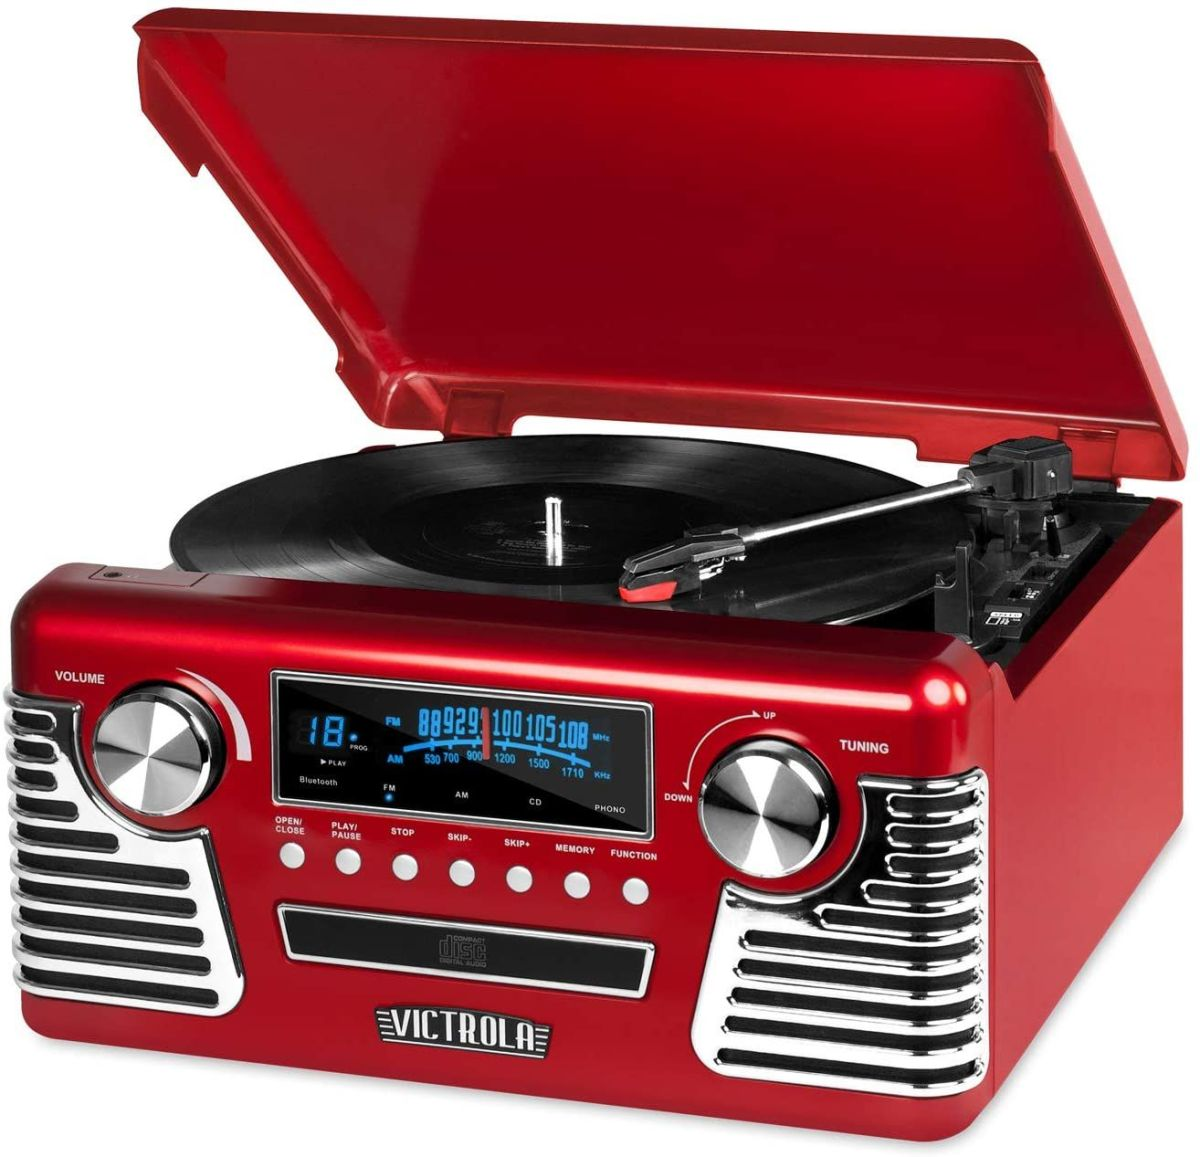 These record players on sale at Amazon would make a genius dad or grad gift